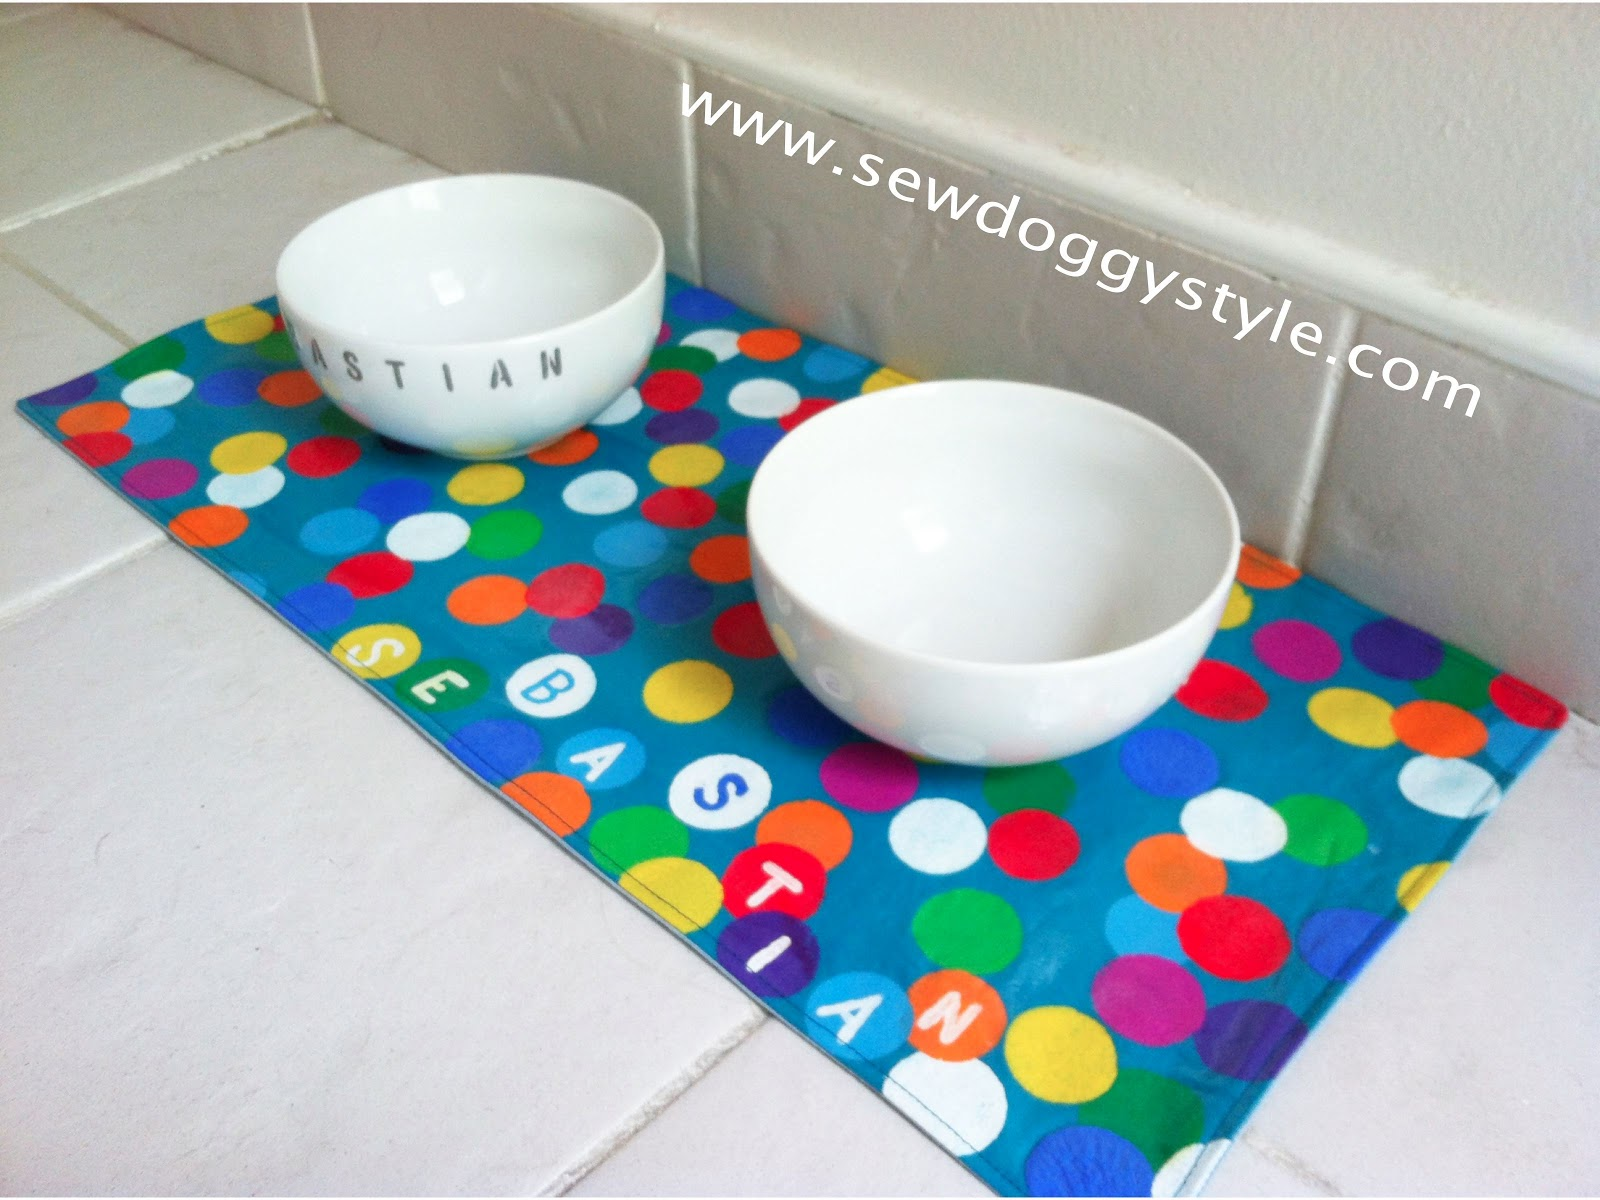 Sew Doggystyle Diy Fun Summer Placemat For Pet Bowls